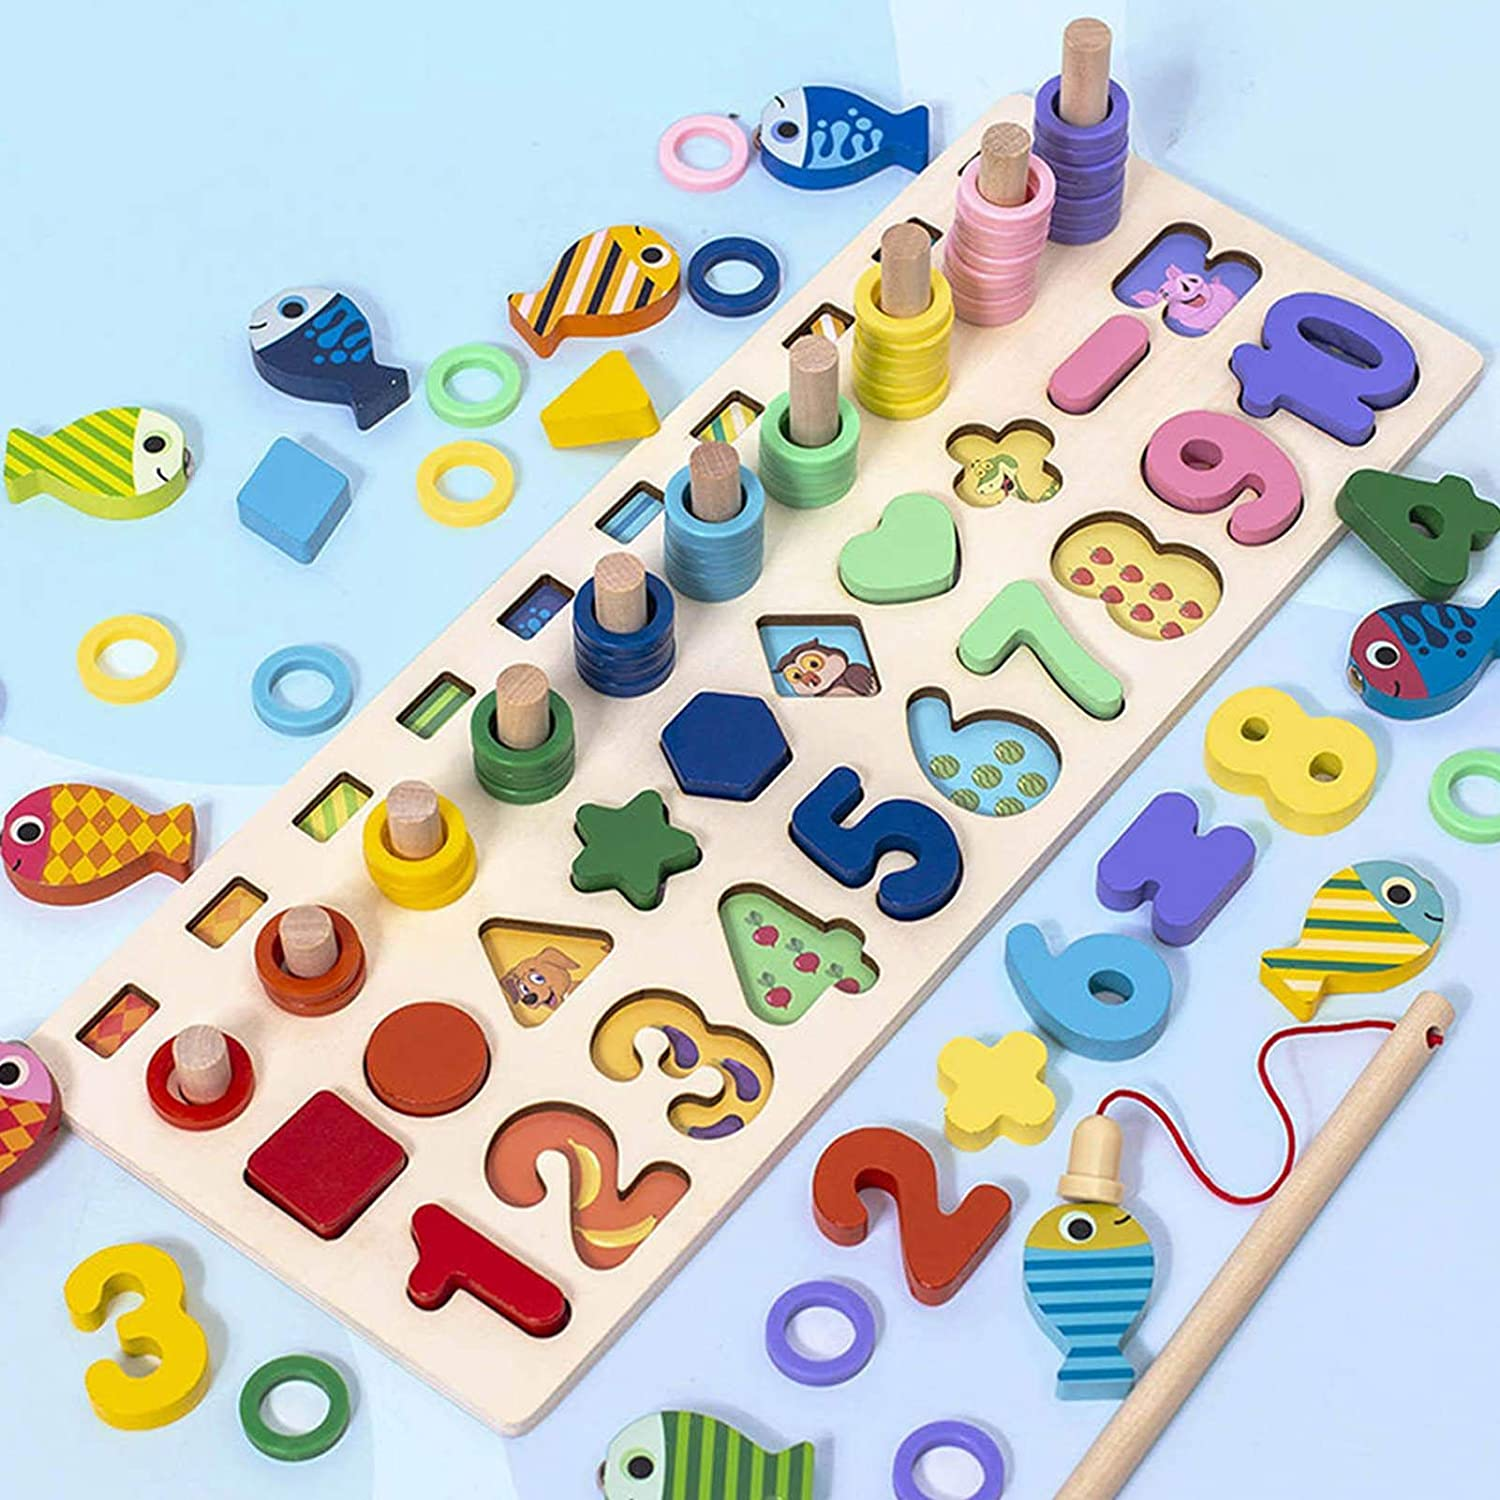 educational stacking block geometric modeling animal learning puzzle board Wooden Montessori puzzle toy 5-in-1 colorful alphanumeric sorting fishing game toy Christmas gifts for boys and girls aged